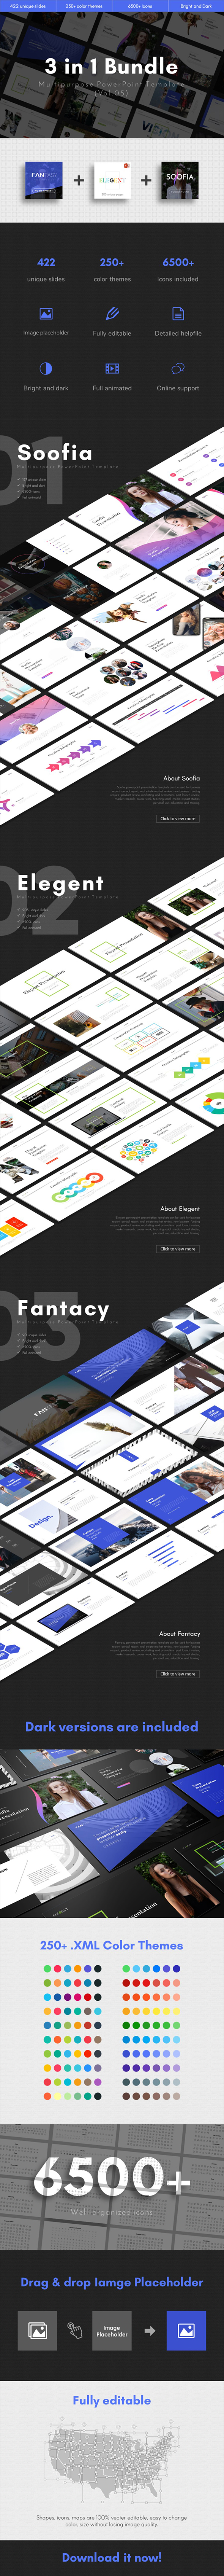 3 in 1 Multipurpose PowerPoint Template Bundle (Vol.05) - Business PowerPoint Templates